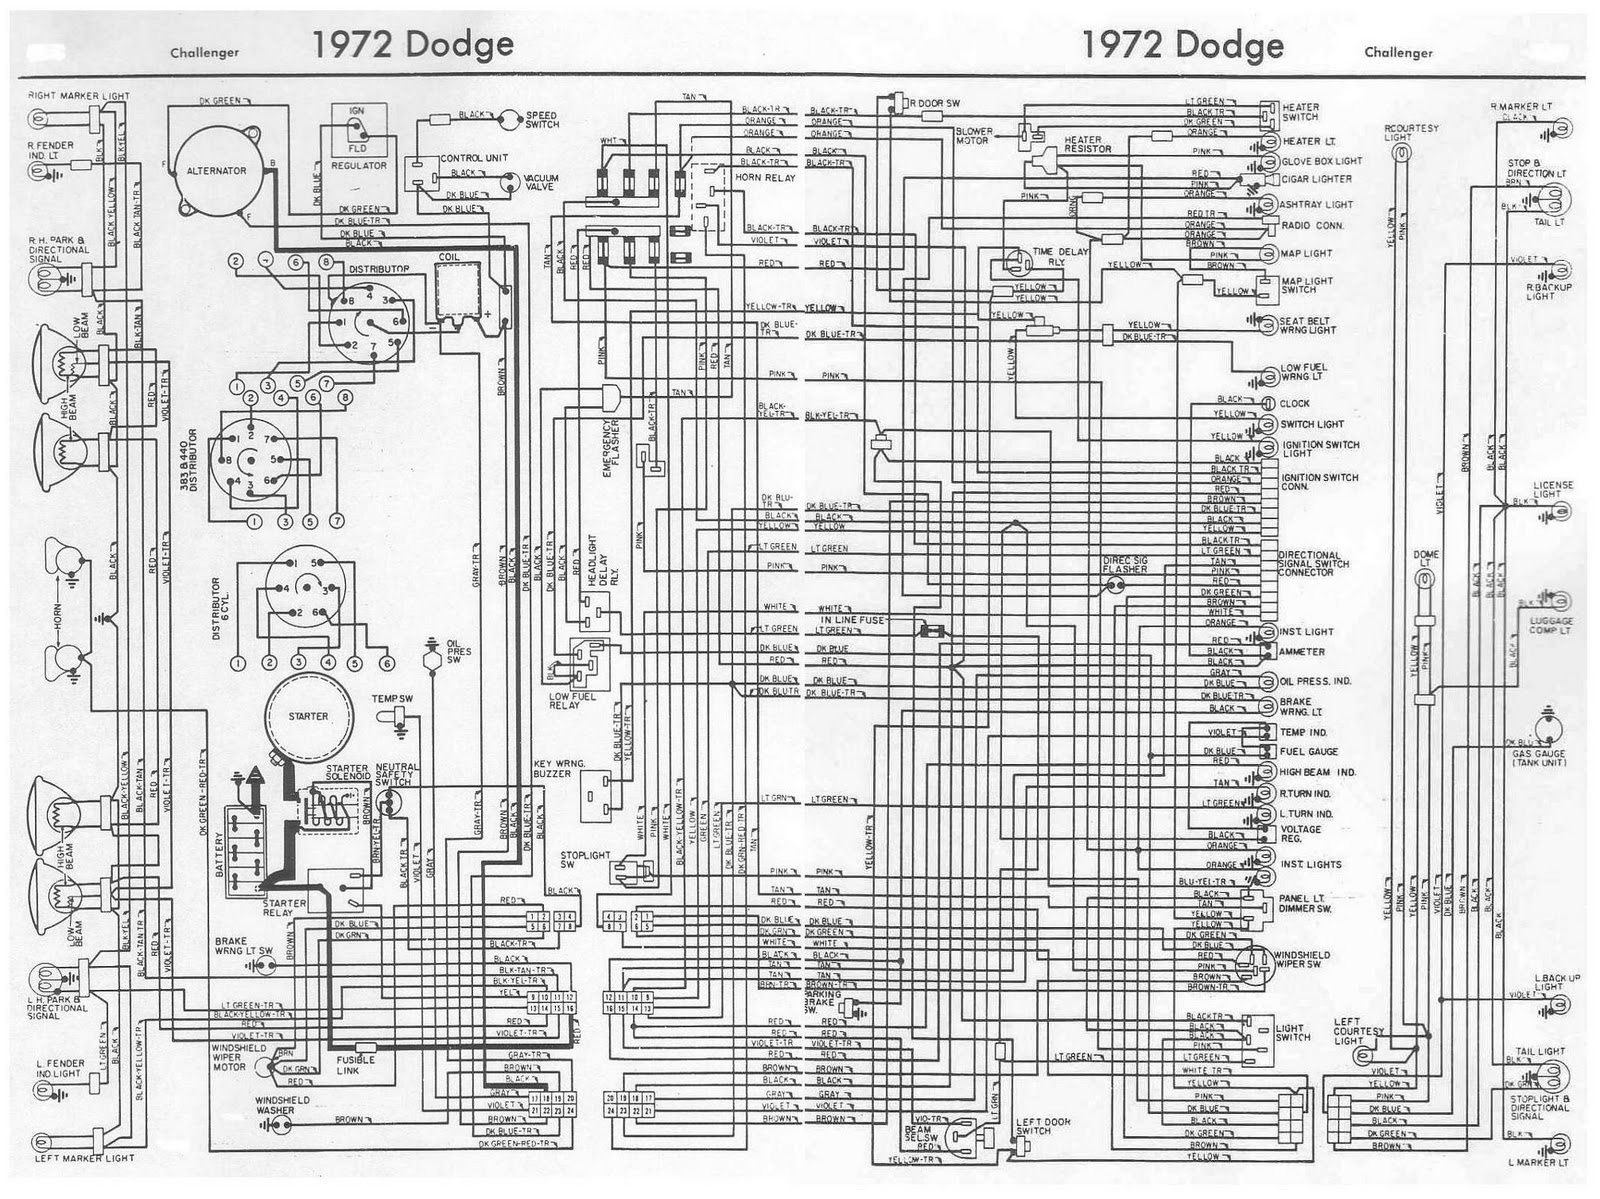 Diagram 1970 Challenger Wire Diagram Full Version Hd Quality Wire Diagram Enerwiring Media90 It